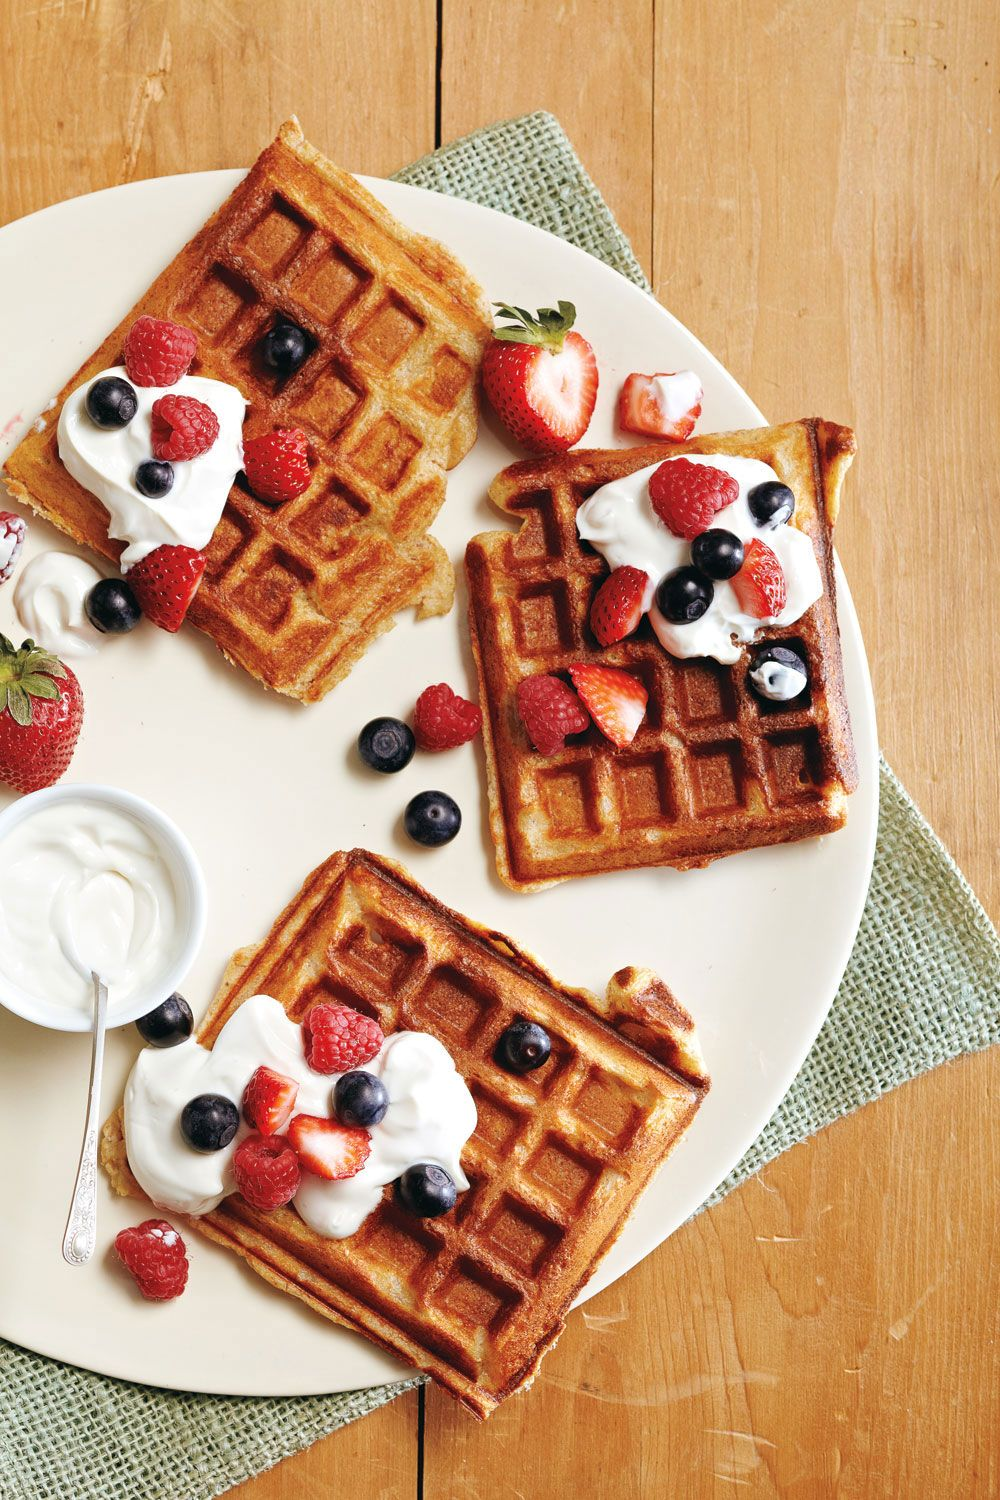 Power Waffles And Fruit Maple Syrup Recipes Delicious Breakfast Recipes Fruit Recipes